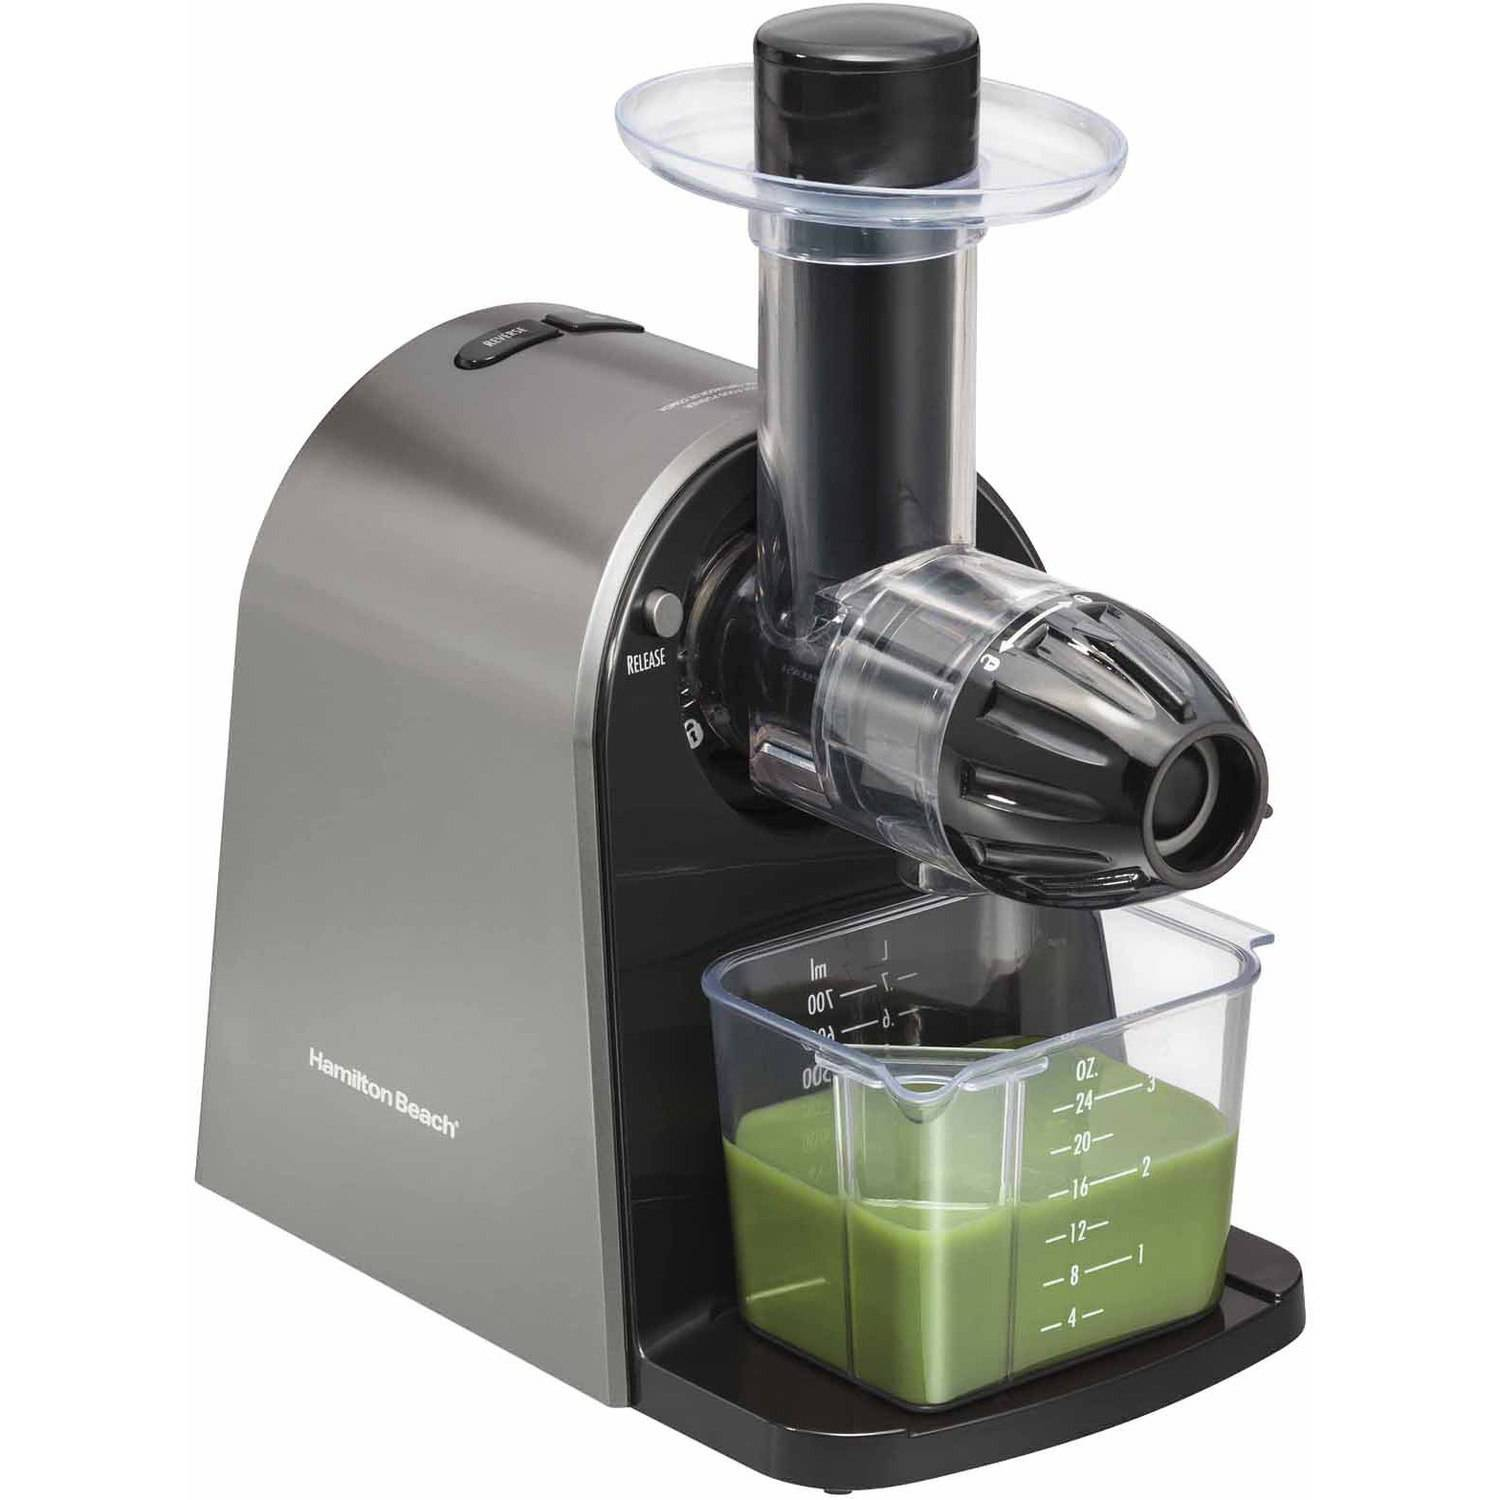 Todo Slow Juicer Reviews : Cold Press Juicer Machine - Masticating Juicer Slow Juice Extractor Maker Electric Juicing ...